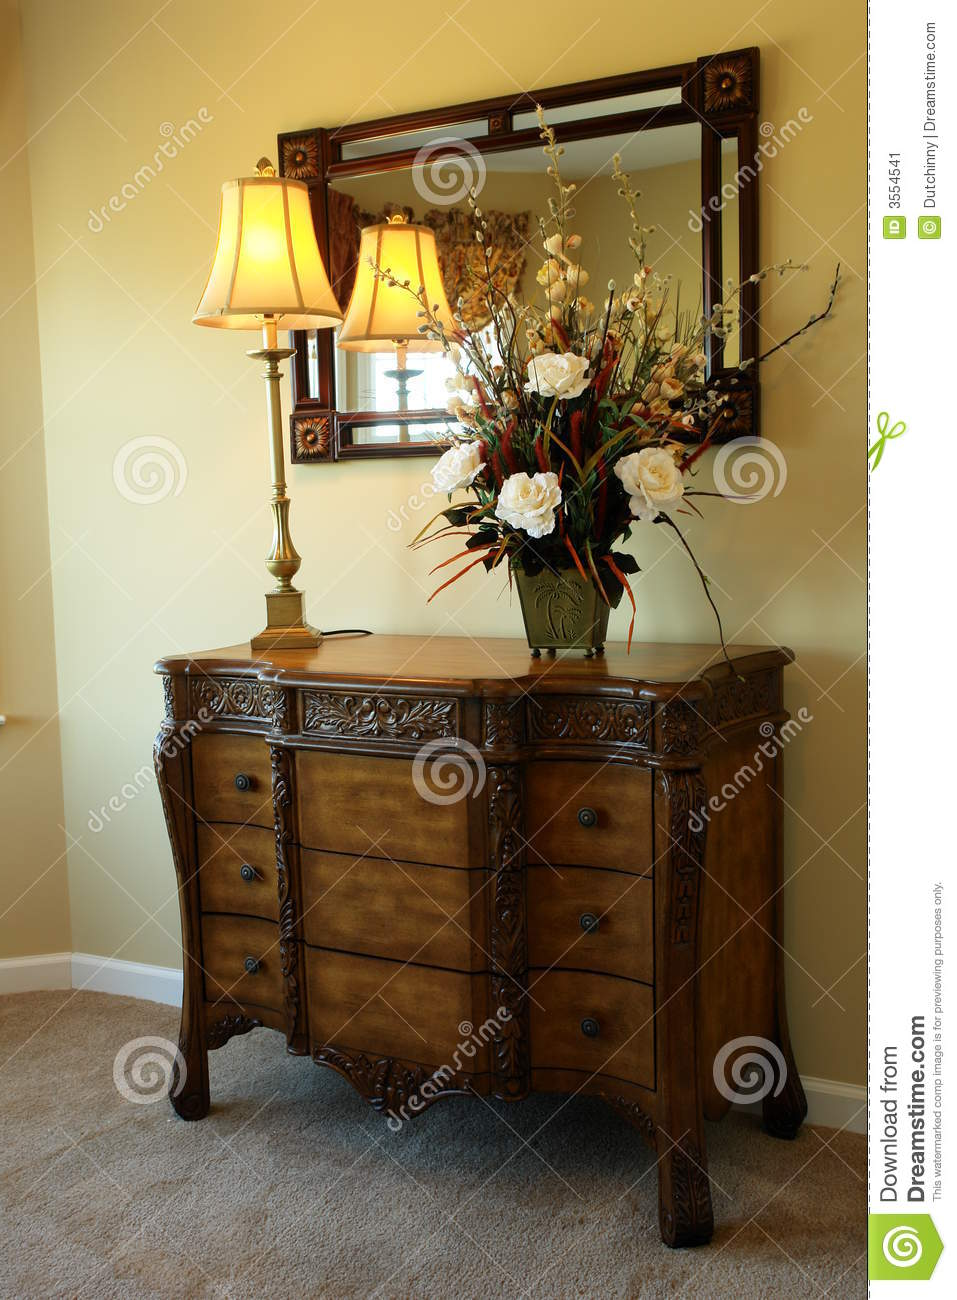 Dresser In Master Bedroom Stock Image Image 3554541